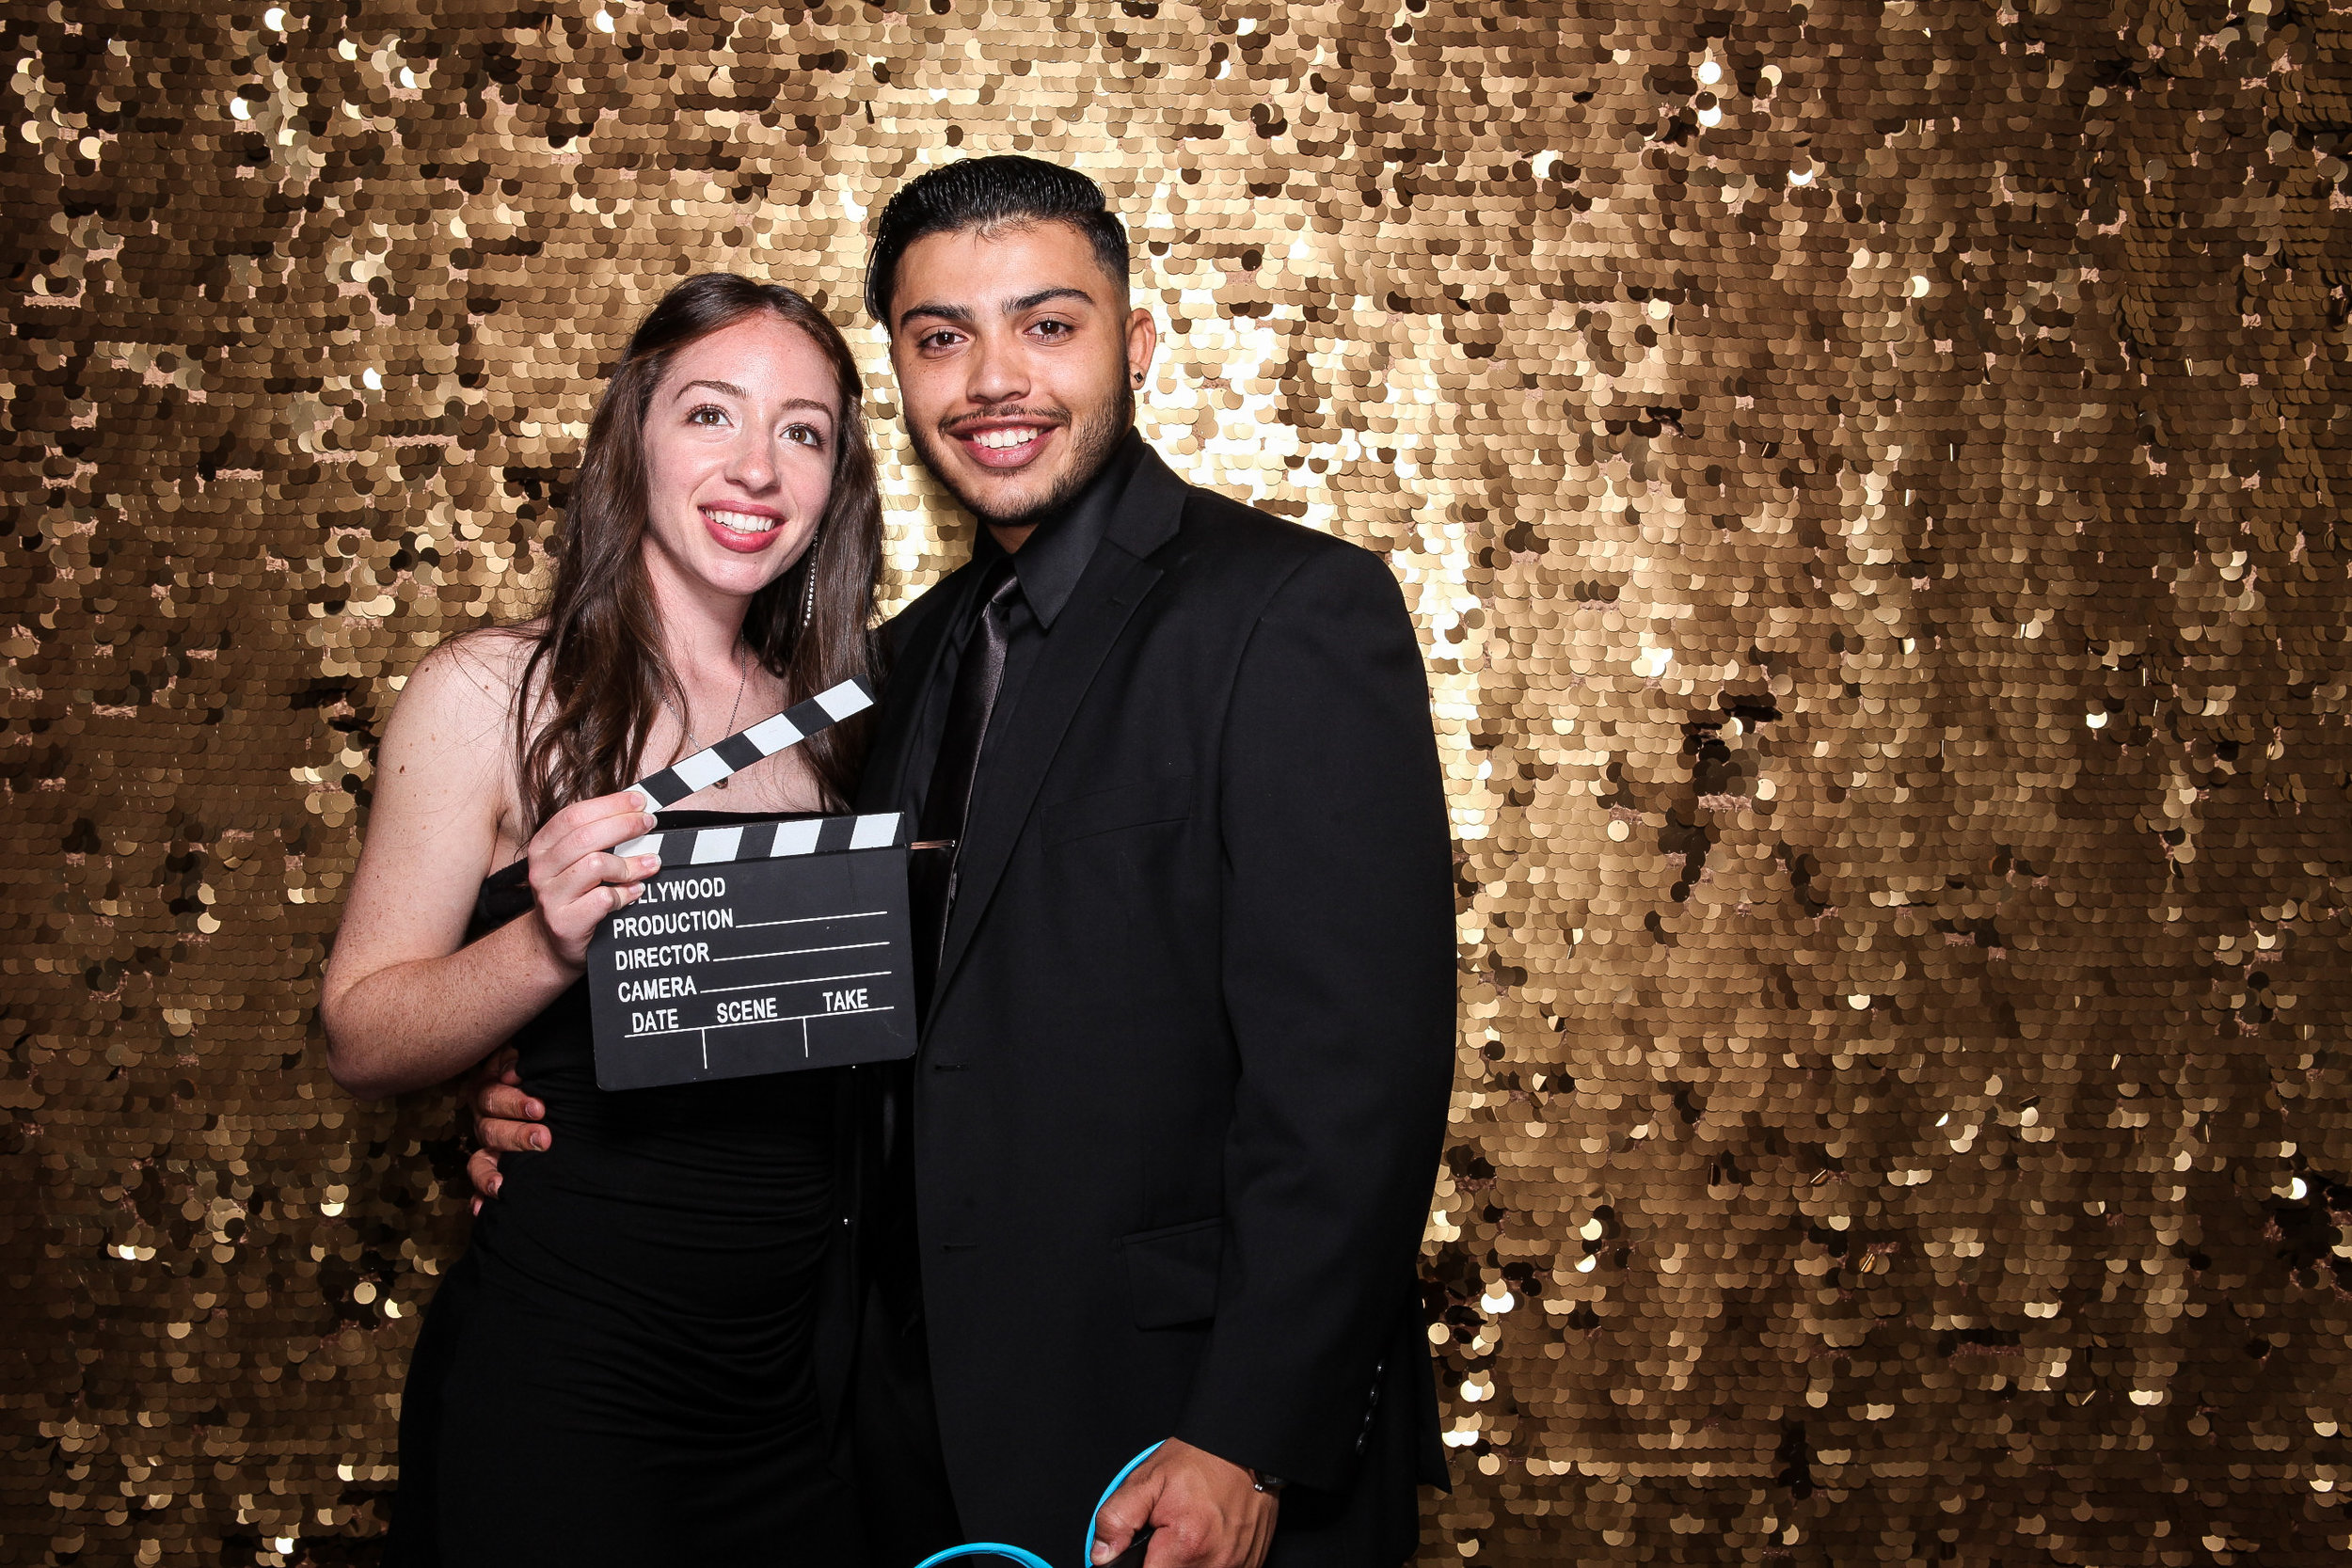 20190503_Adelphi_Senior_Formal-247.jpg